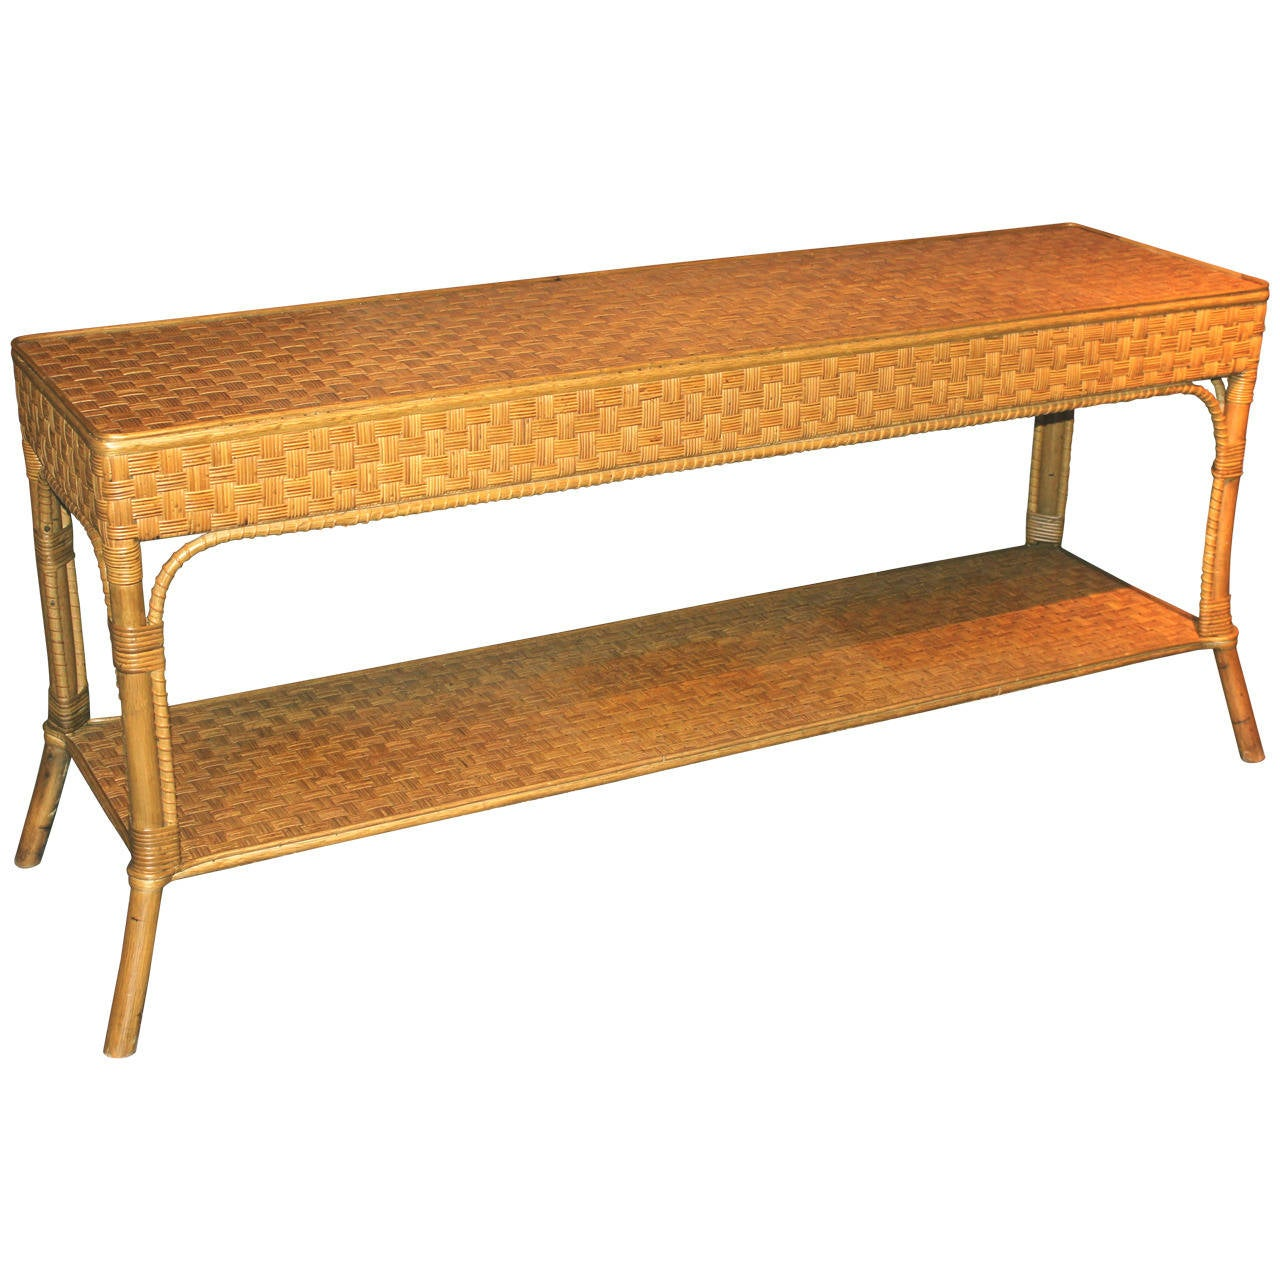 Wicker console or sofa table at 1stdibs for Sofa table 6 ft